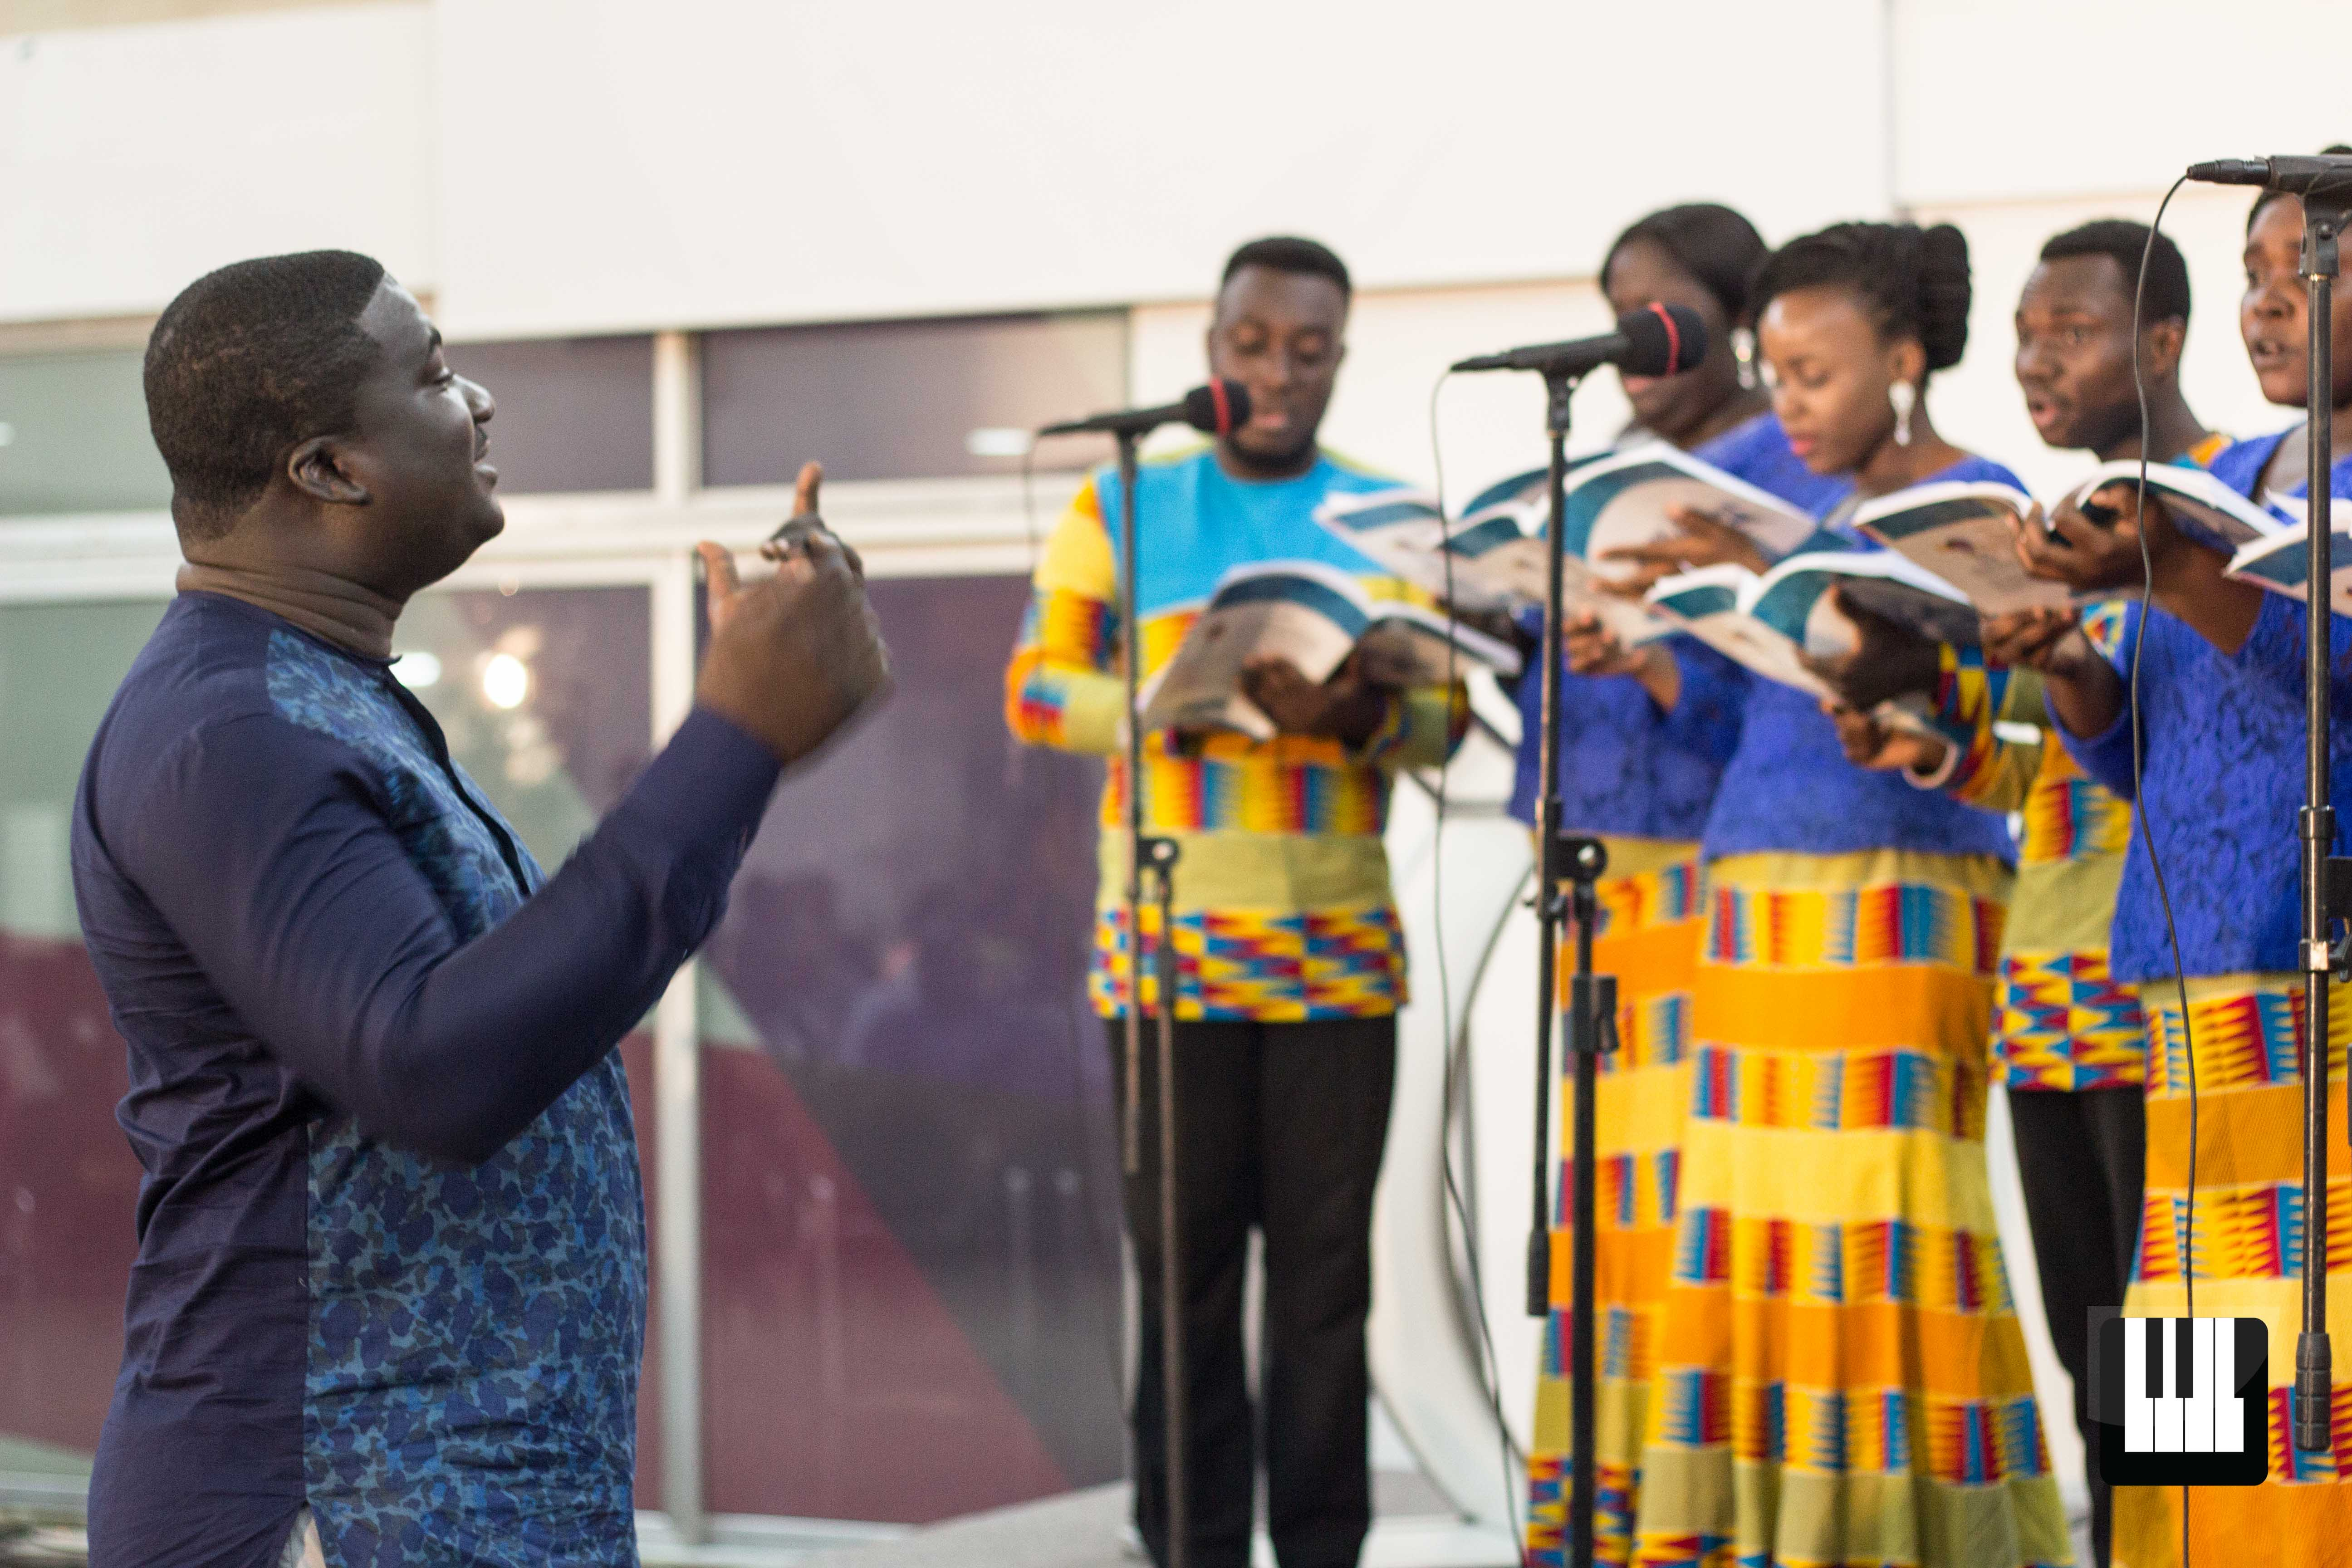 Joseph & His Brethren Premiers in Africa We look forward to one of the biggest musical events this year, as Harmonious Chorale premiers Handel's Joseph and his Brethren in Accra.